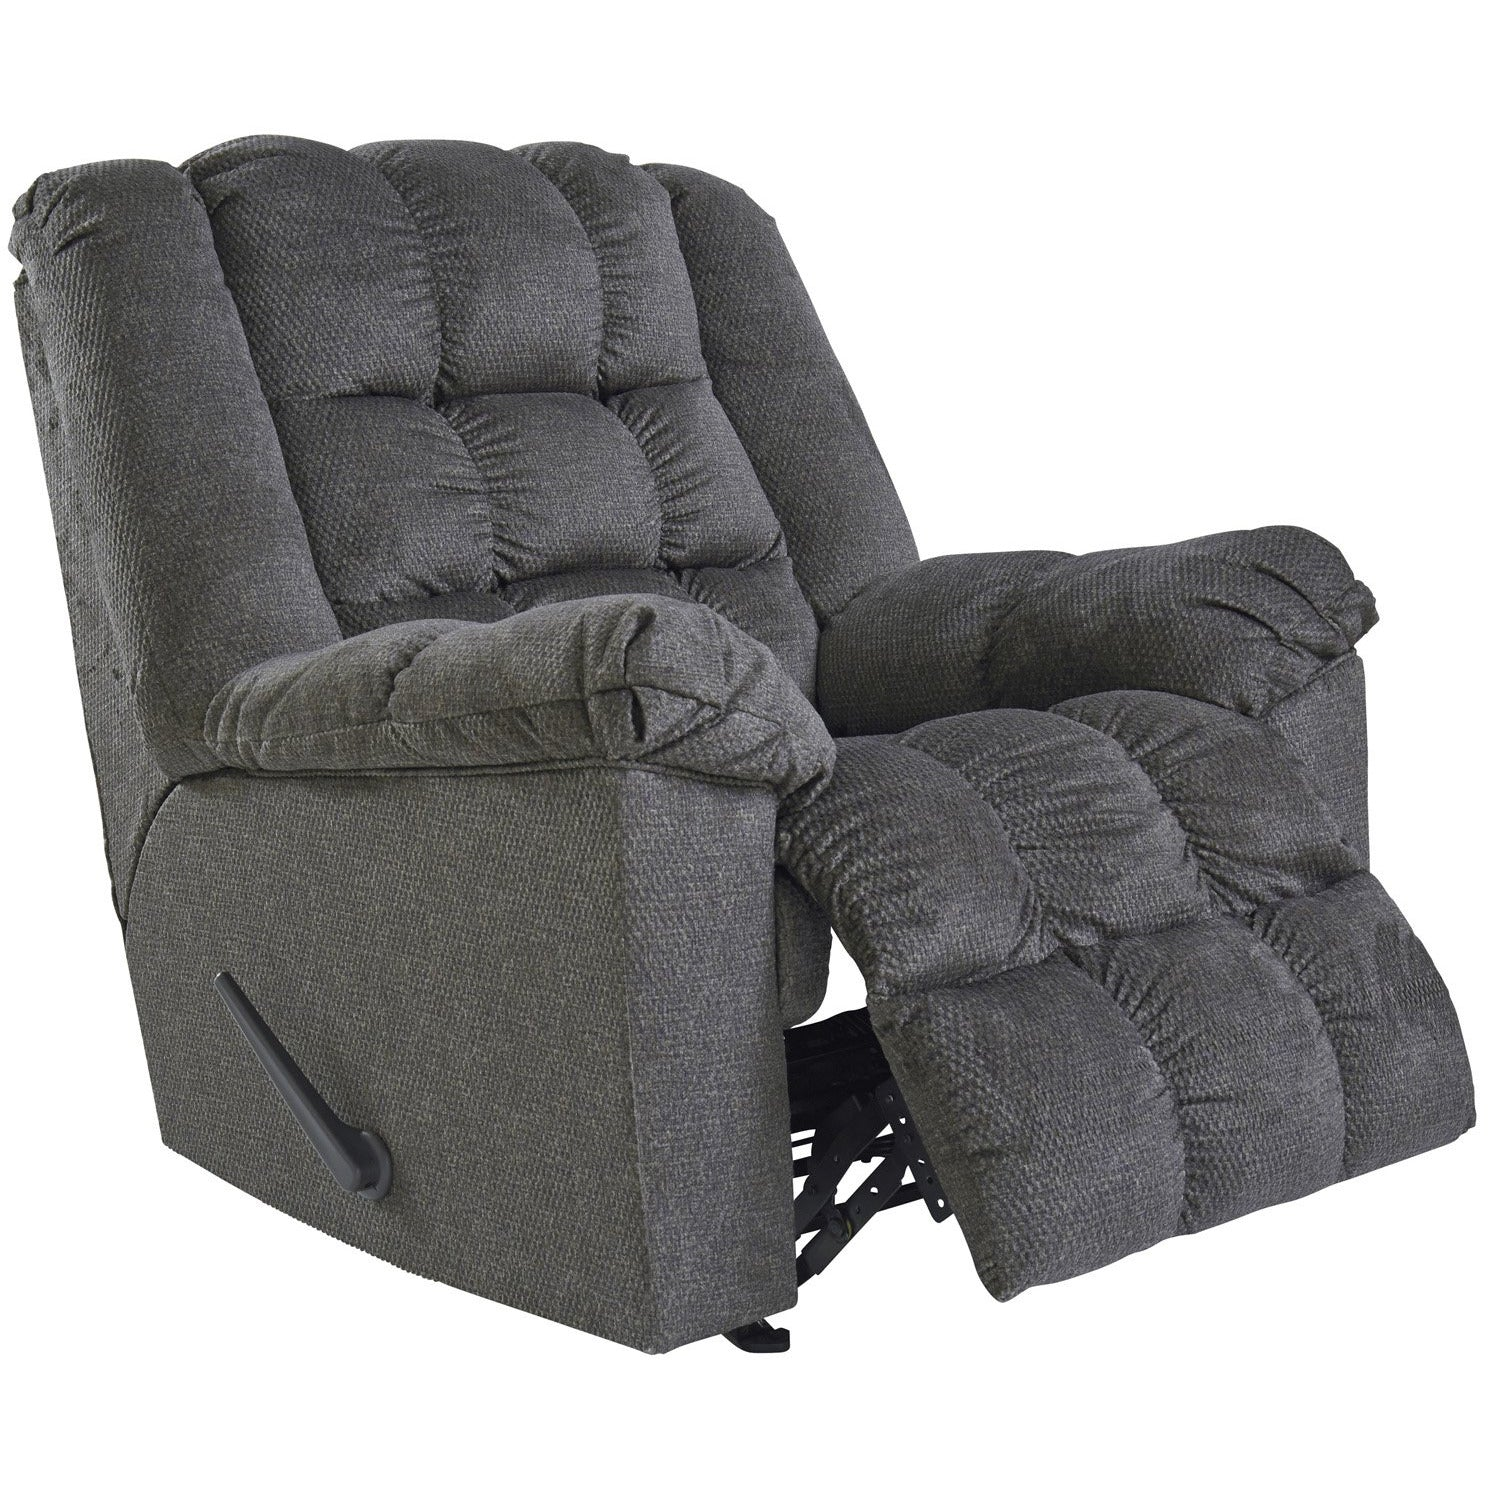 Drakestone Heated Massage Rocker Recliner